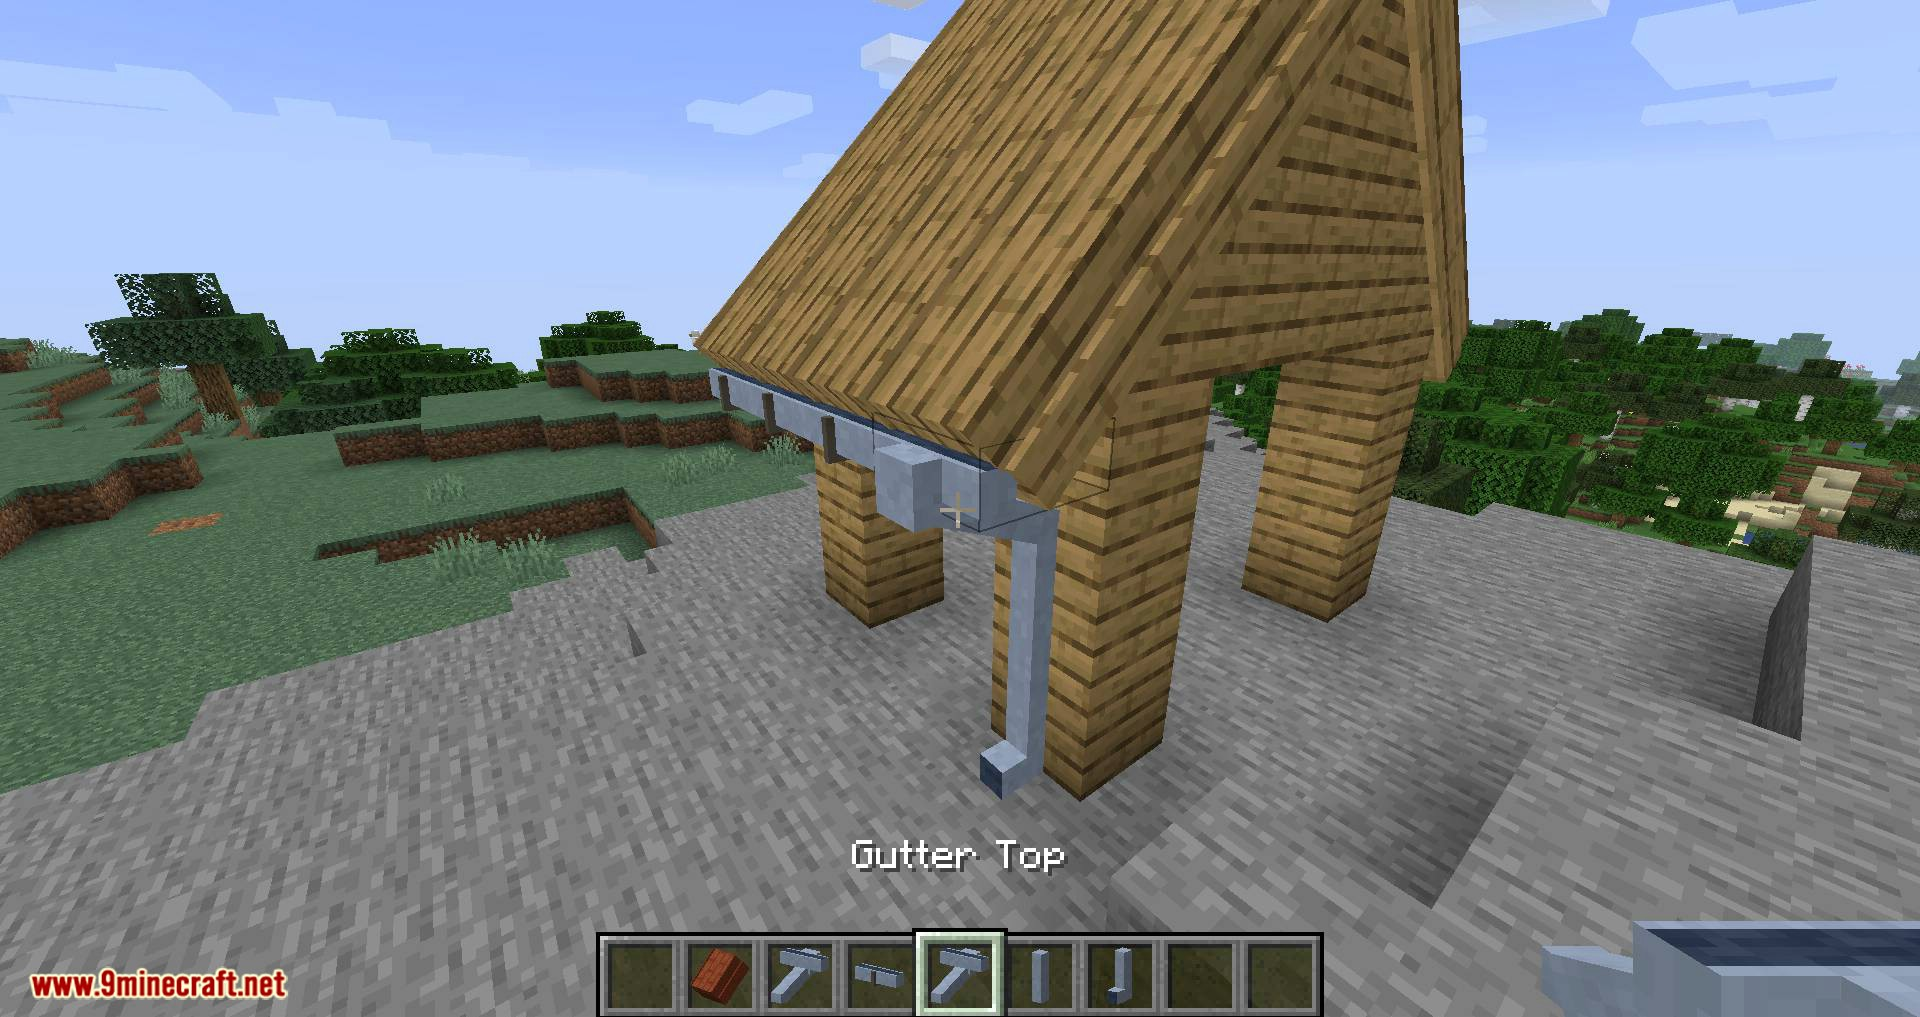 Macaw_s Roofs mod for minecraft 12